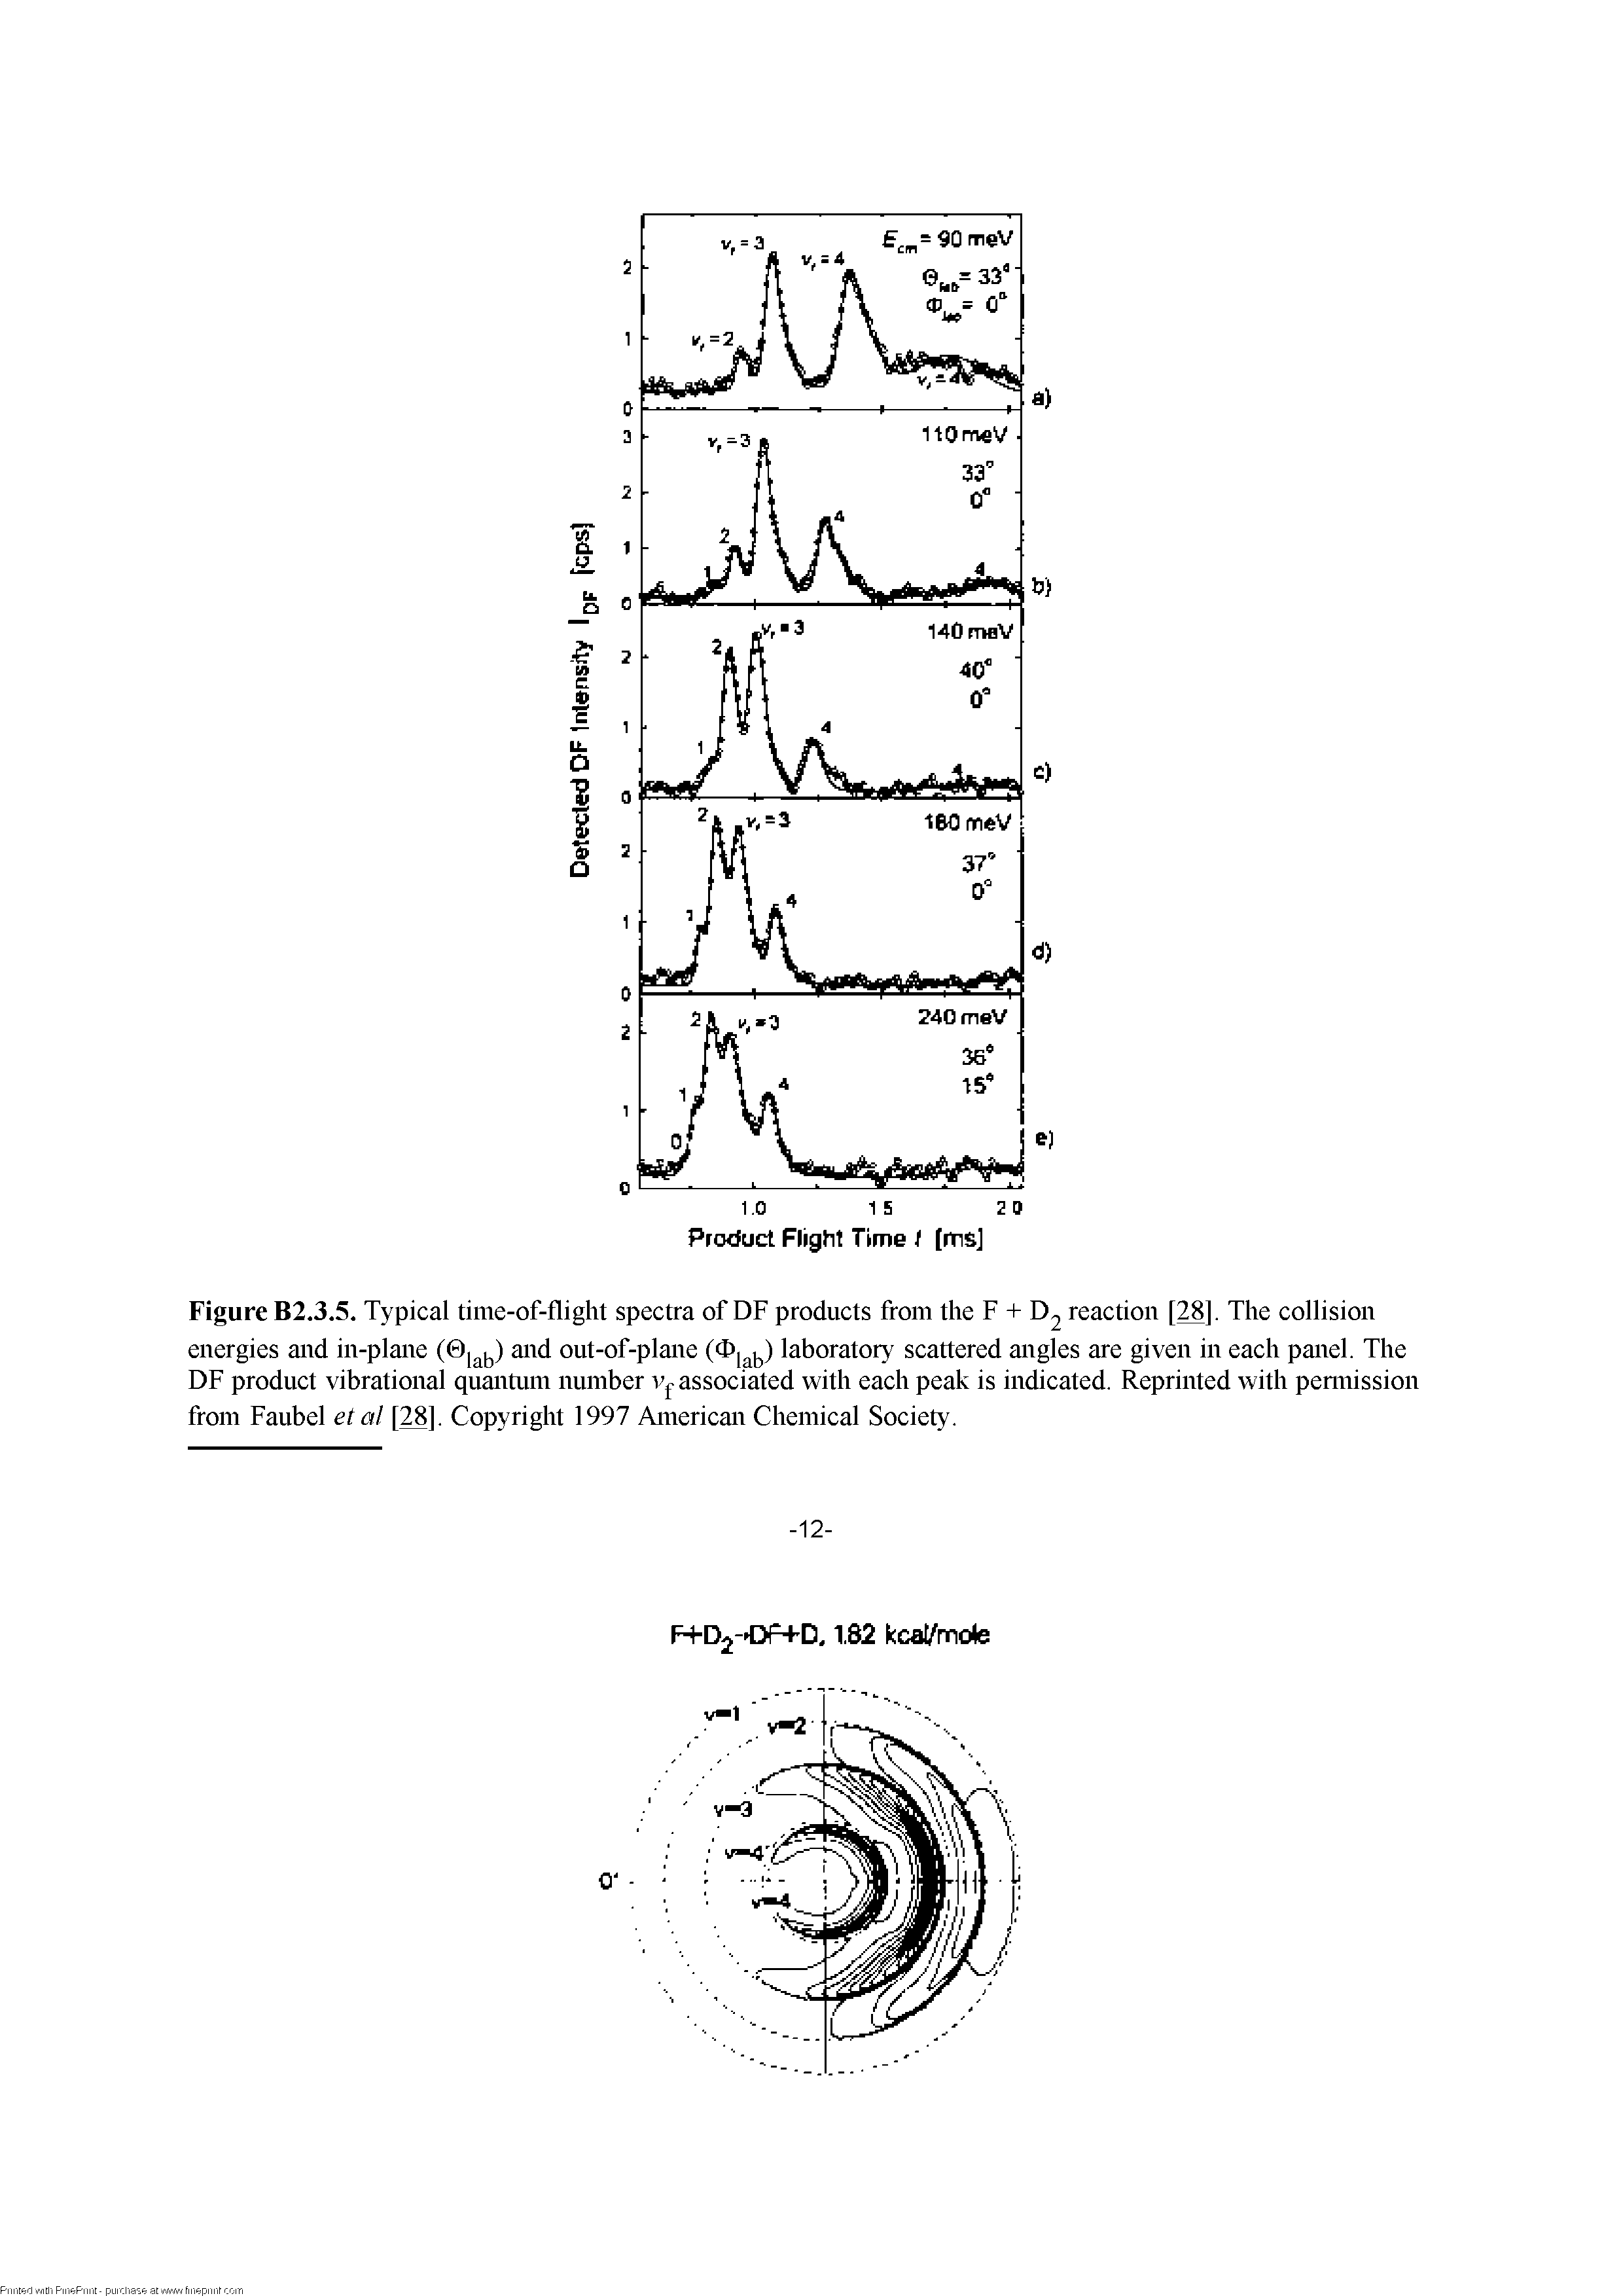 Figure B2.3.5. Typical time-of-flight spectra of DF products from the F + D2 reaction [28]- The collision energies and in-plane and out-of-plane laboratory scattered angles are given in each panel. The DF product vibrational quantum number associated with each peak is indicated. Reprinted with pennission from Faiibel etal [28]. Copyright 1997 American Chemical Society.